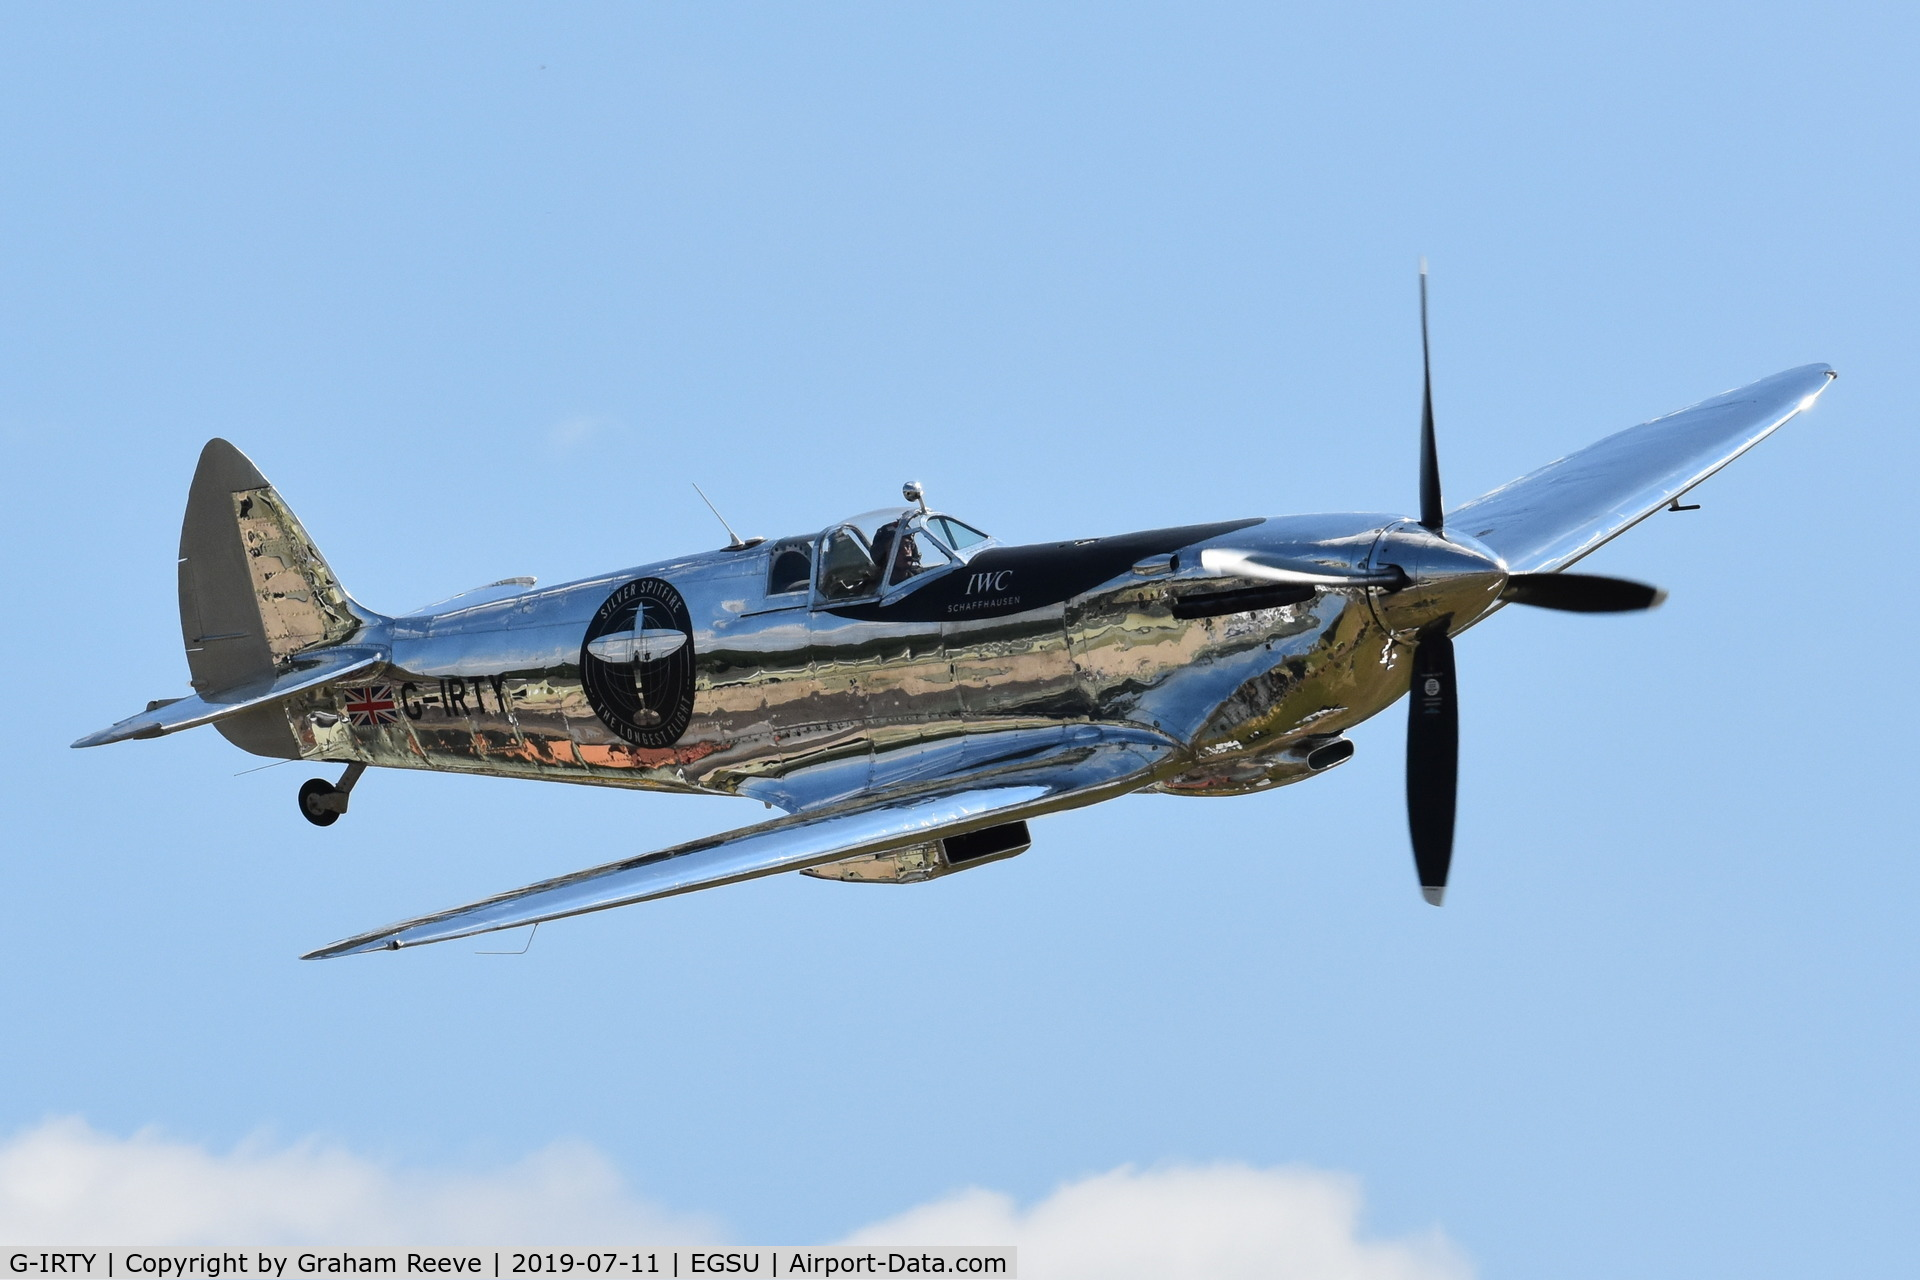 G-IRTY, 1943 Supermarine 361 Spitfire LF.IXc C/N CBAF.IX.970, Over head at Duxford.